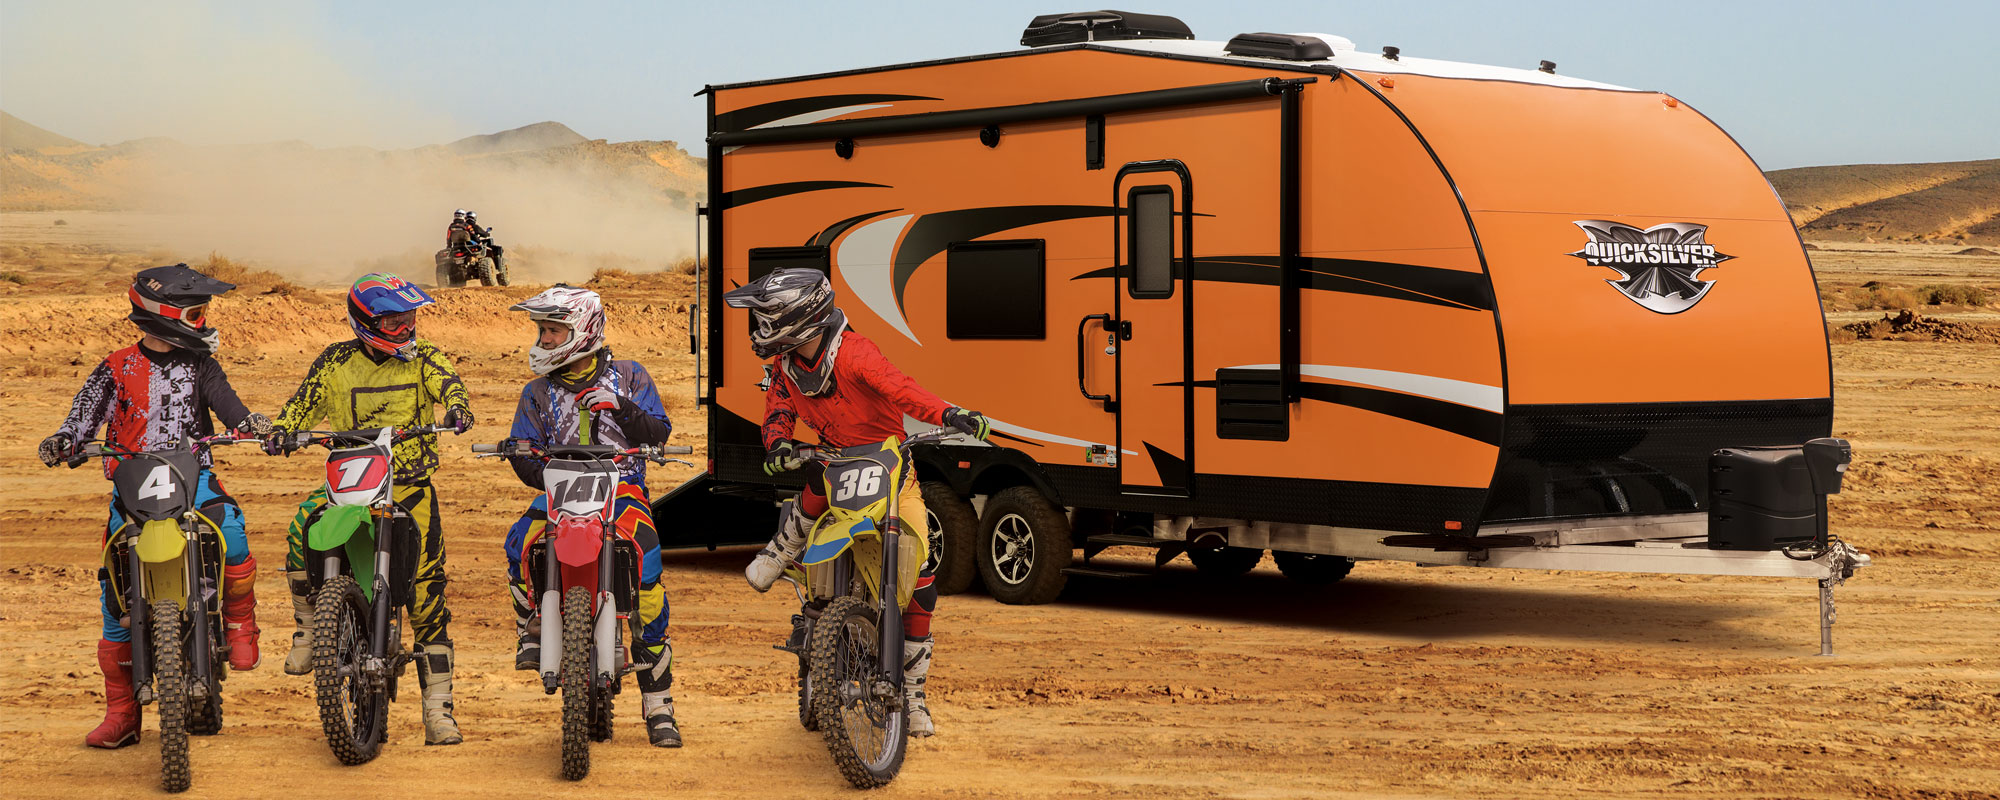 QuickSilver Lightweight Toy Hauler with Dirtbikes and ATVs Camping